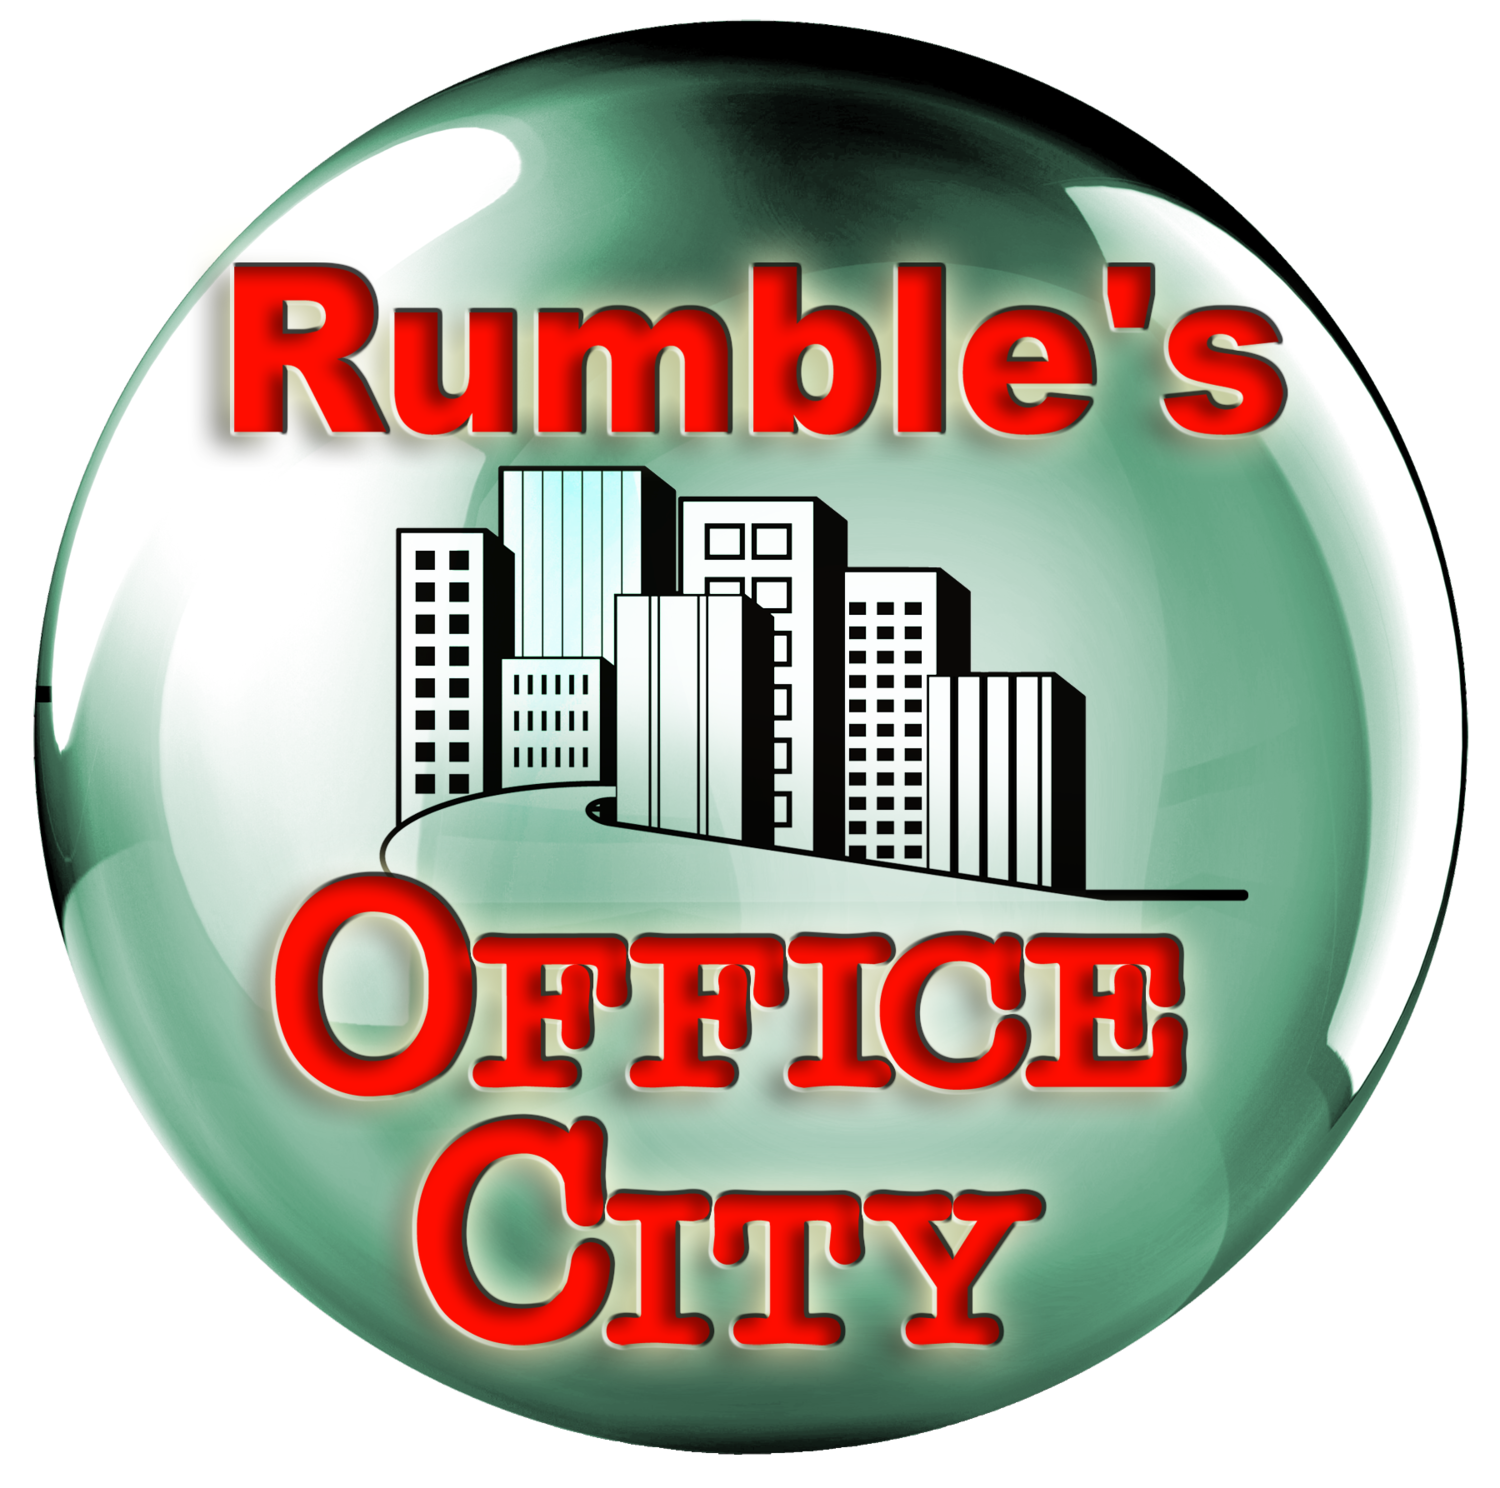 Rumble's Office City